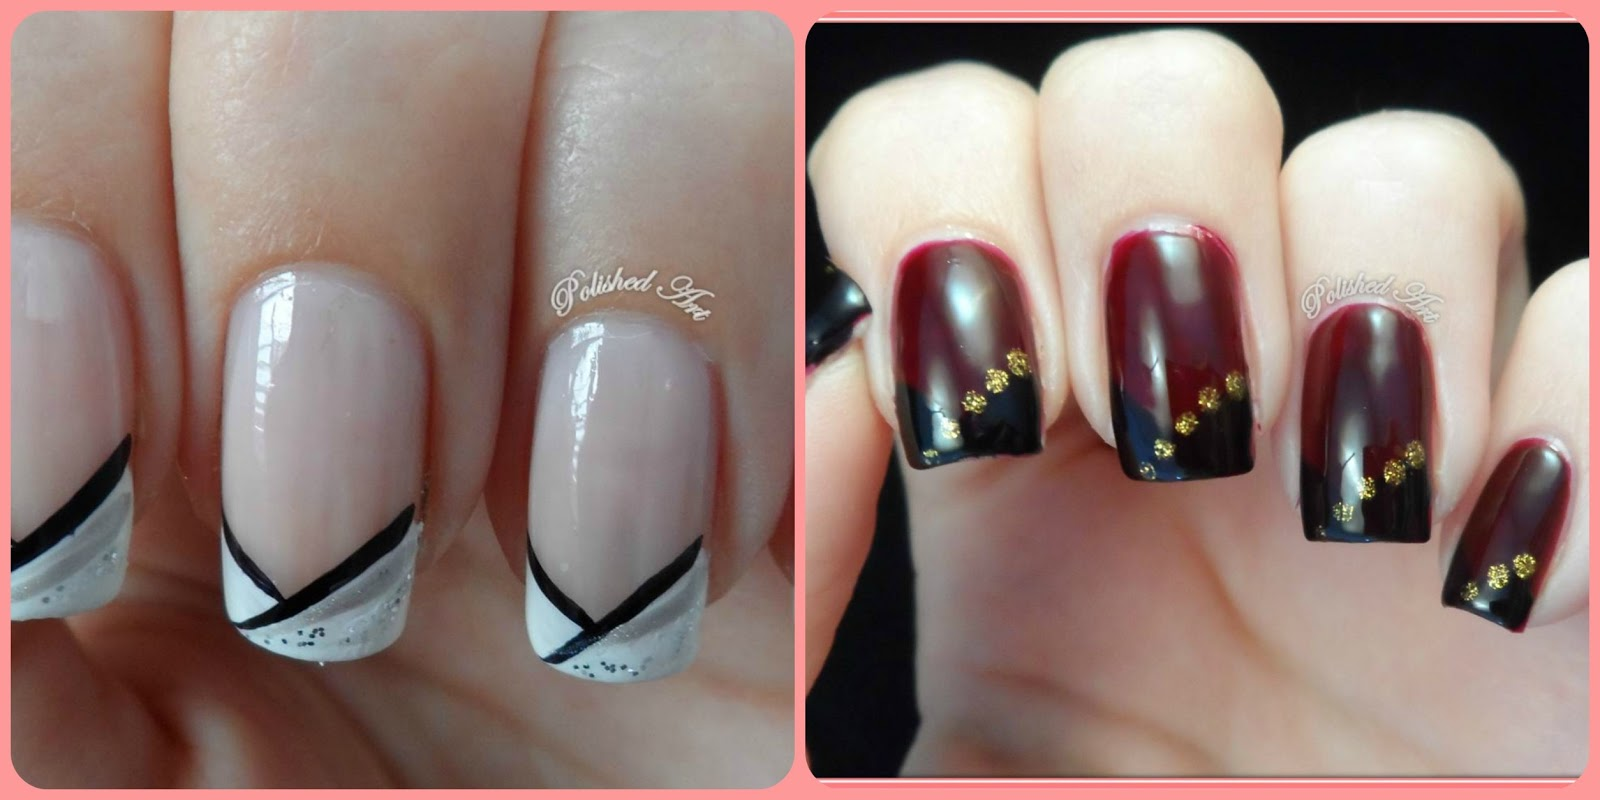 Polished Art: Nail Art In A Hurry #2